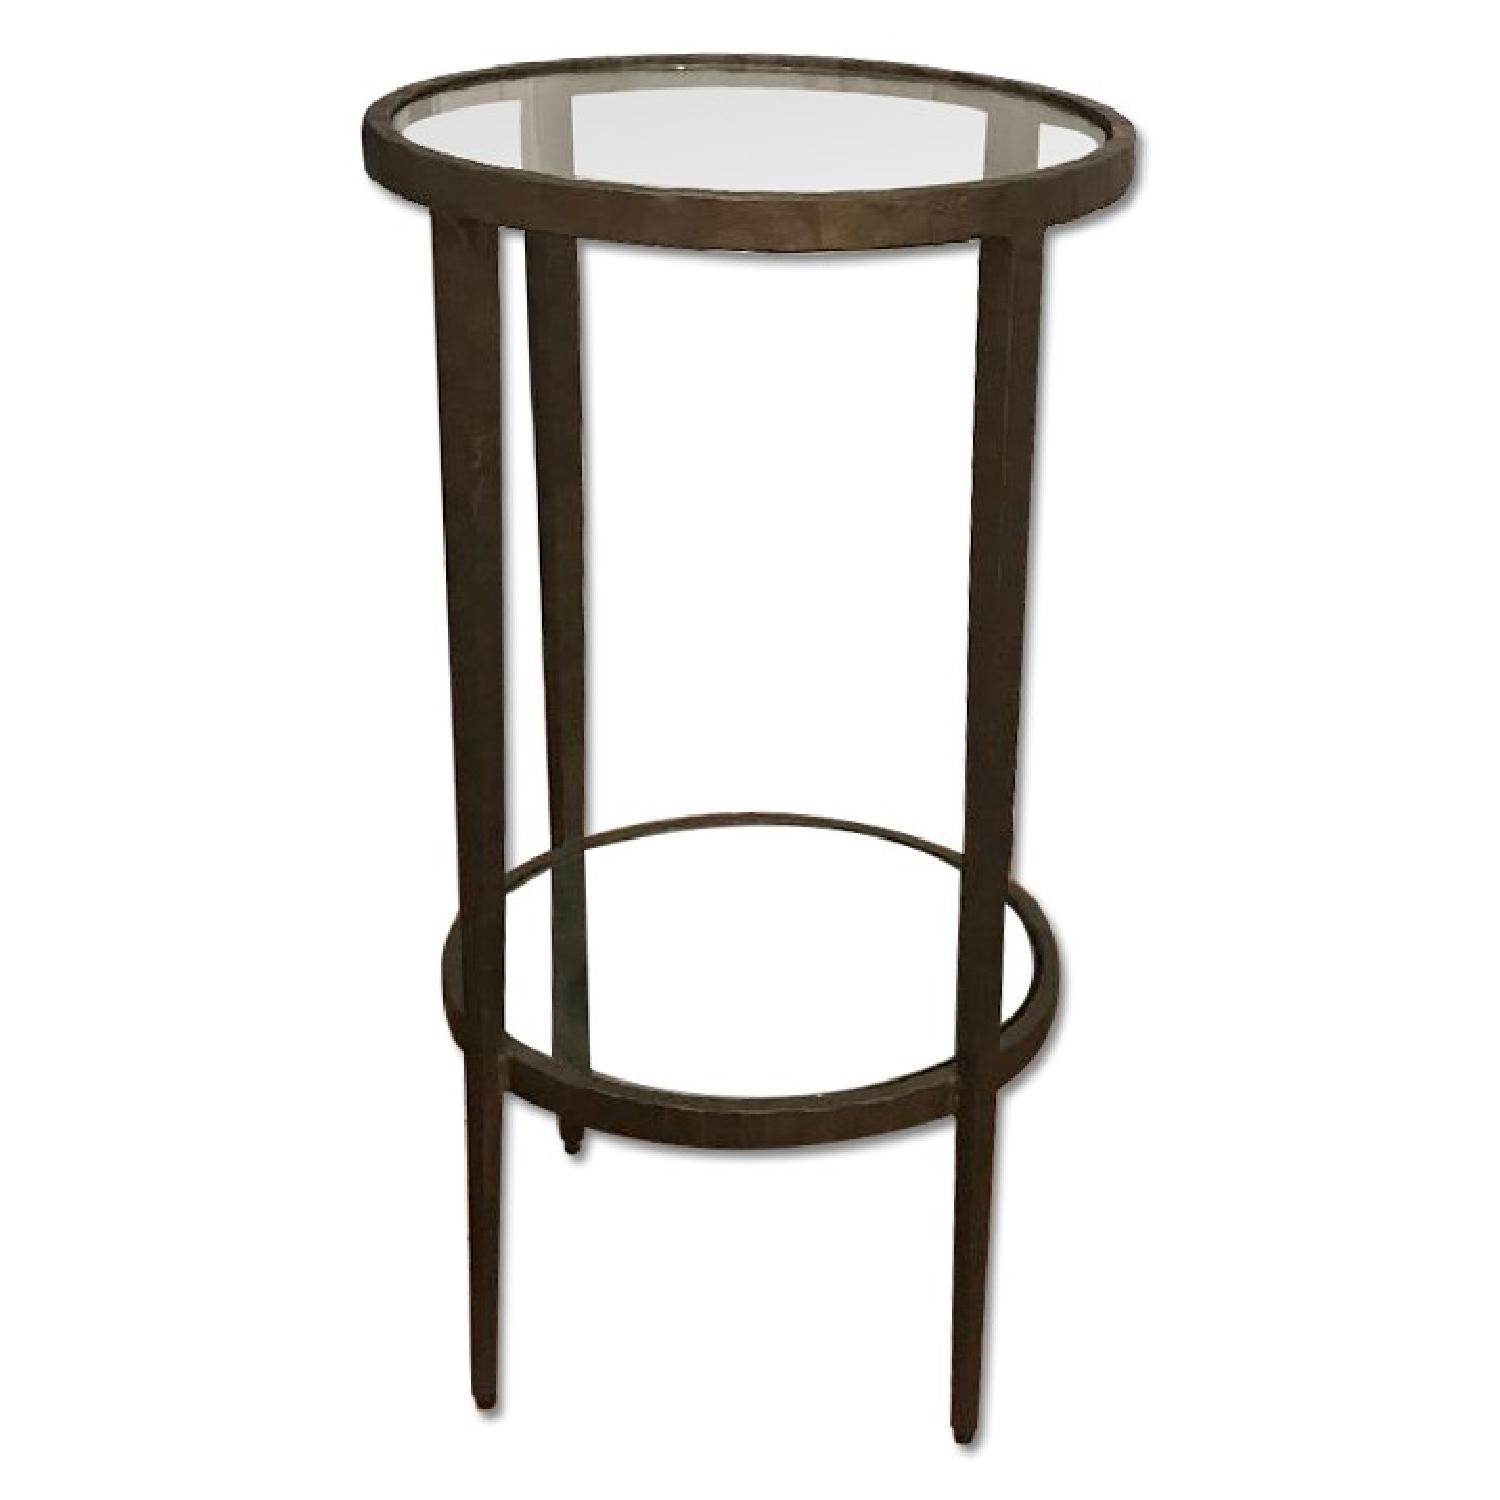 Crate & Barrel Brass & Glass Side Table - image-0